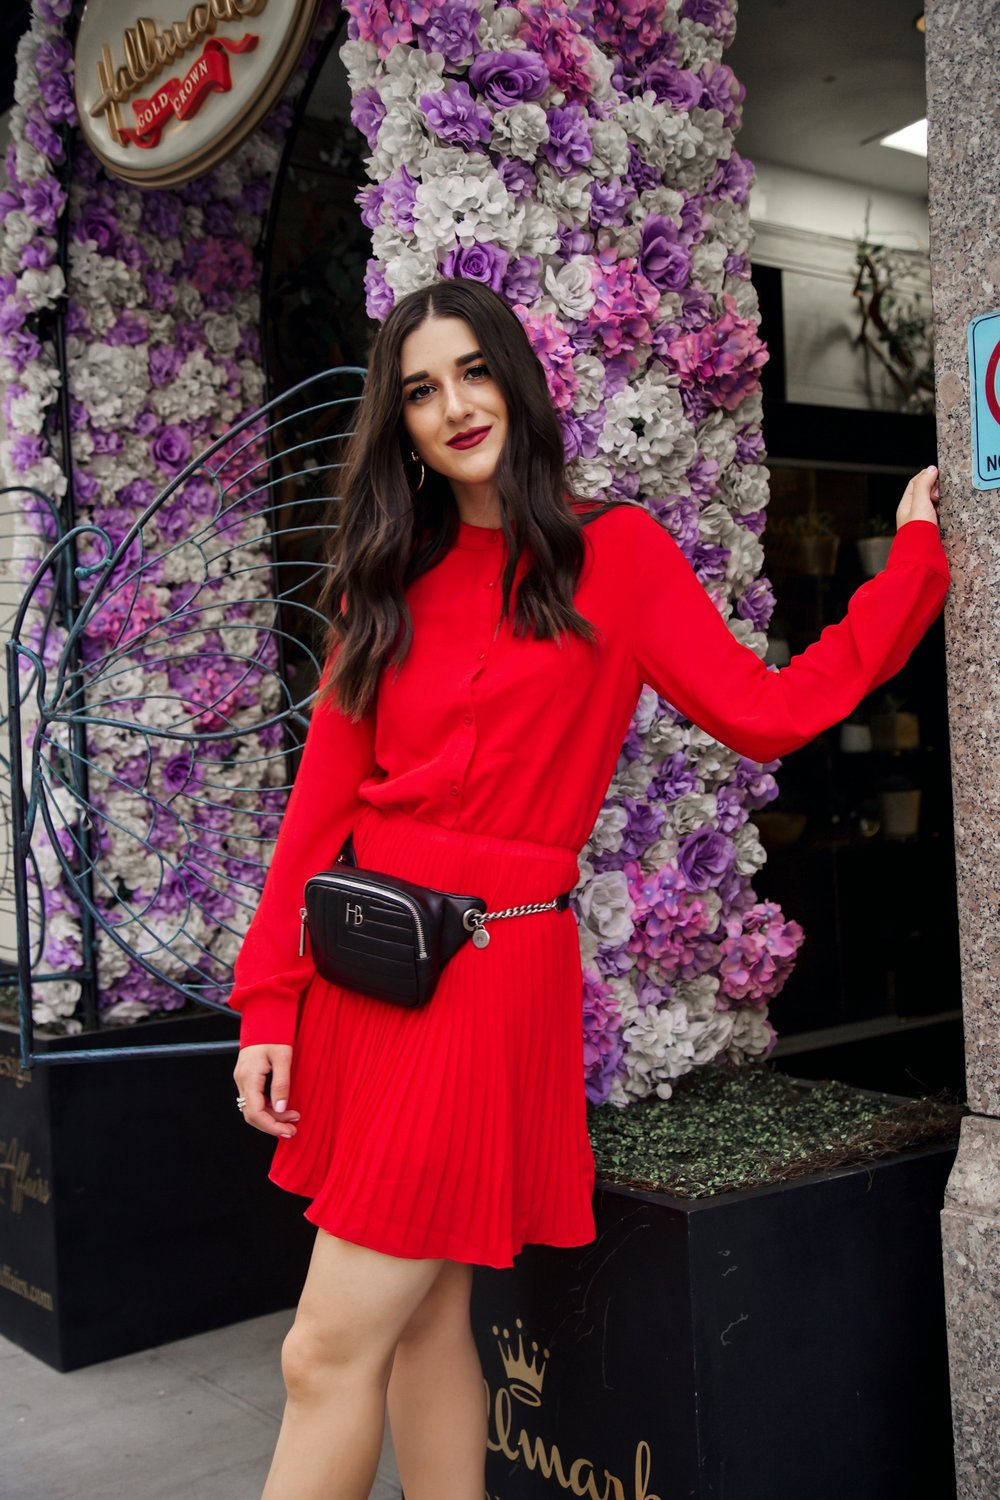 What Do Bloggers Do With All The Free Products They Receive Red Pleated Dress Black Belt Bag Esther Santer Fashion Blog NYC Street Style Blogger Outfit OOTD Trendy ASOS Vince Camuto Braided Sandals Shoes Hair Fanny Pack Women Shopping Girl Summer Fall.jpg